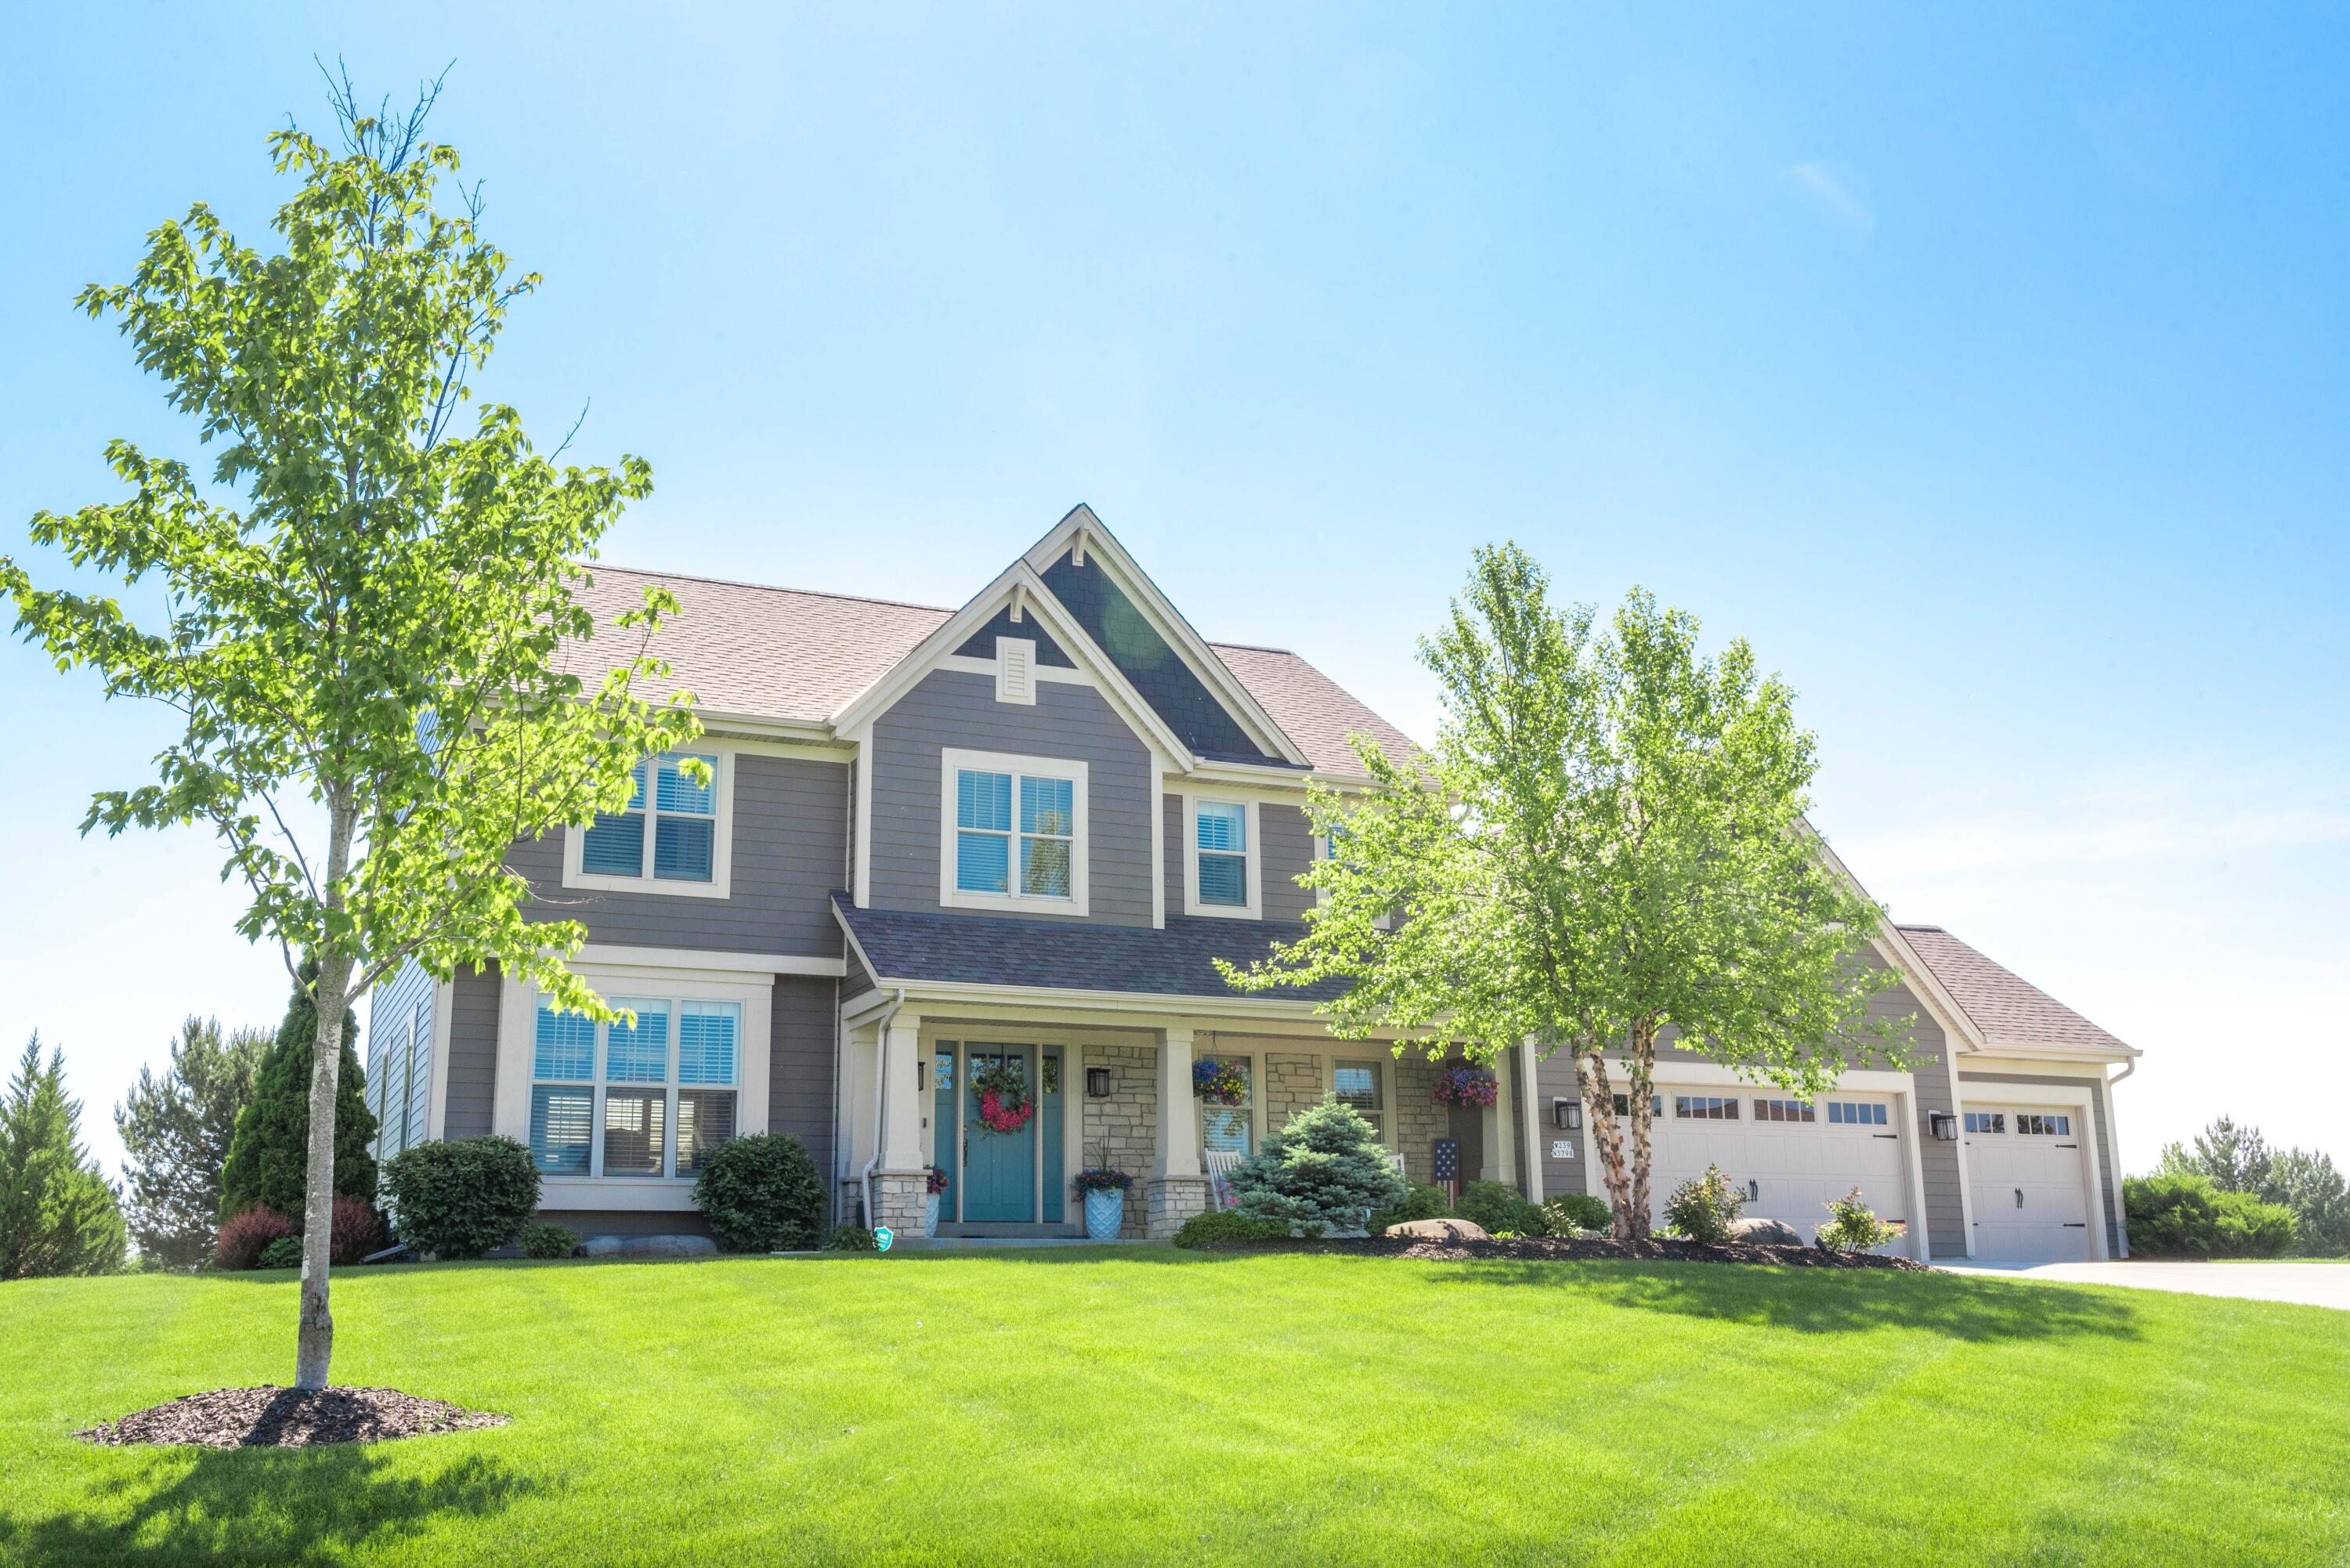 W239N3798 River Birch Ct, Pewaukee, Wisconsin 53072, 5 Bedrooms Bedrooms, ,3 BathroomsBathrooms,Single-Family,For Sale,River Birch Ct,1767087